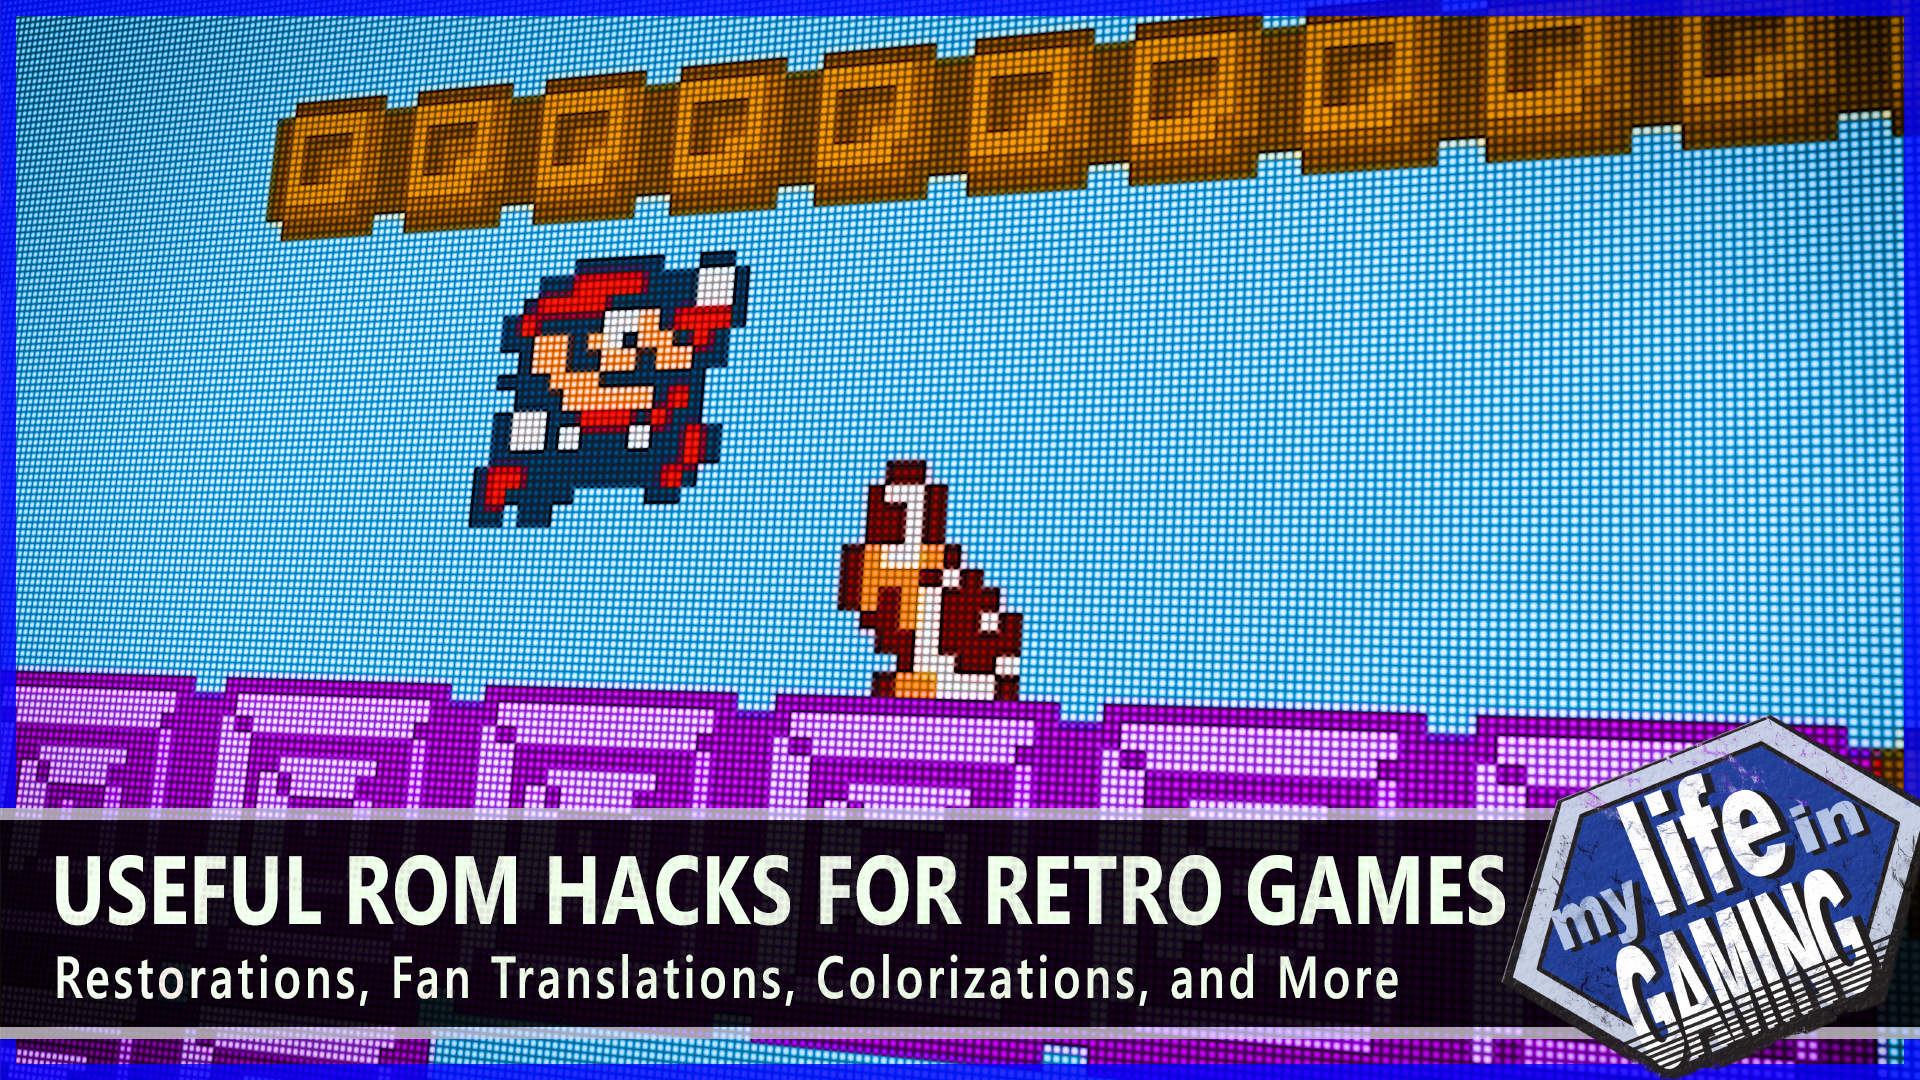 Useful ROM Hacks for Retro Games from My Life in Gaming